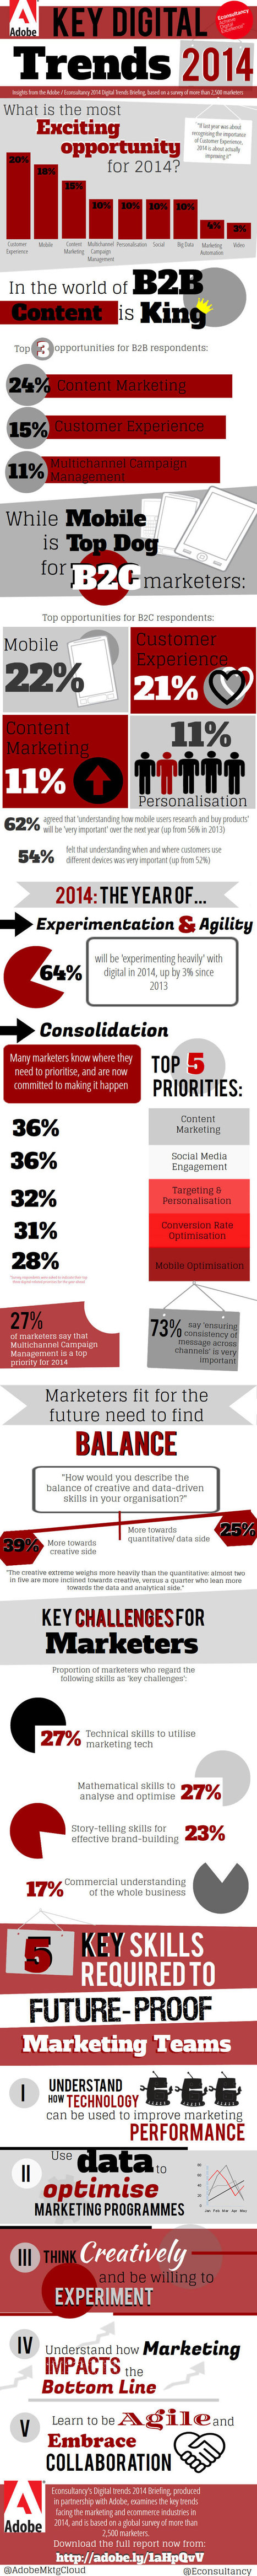 Customer Experience and Content Marketing Top 2014 Digital Trends - Digital Europe   Customer   Scoop.it